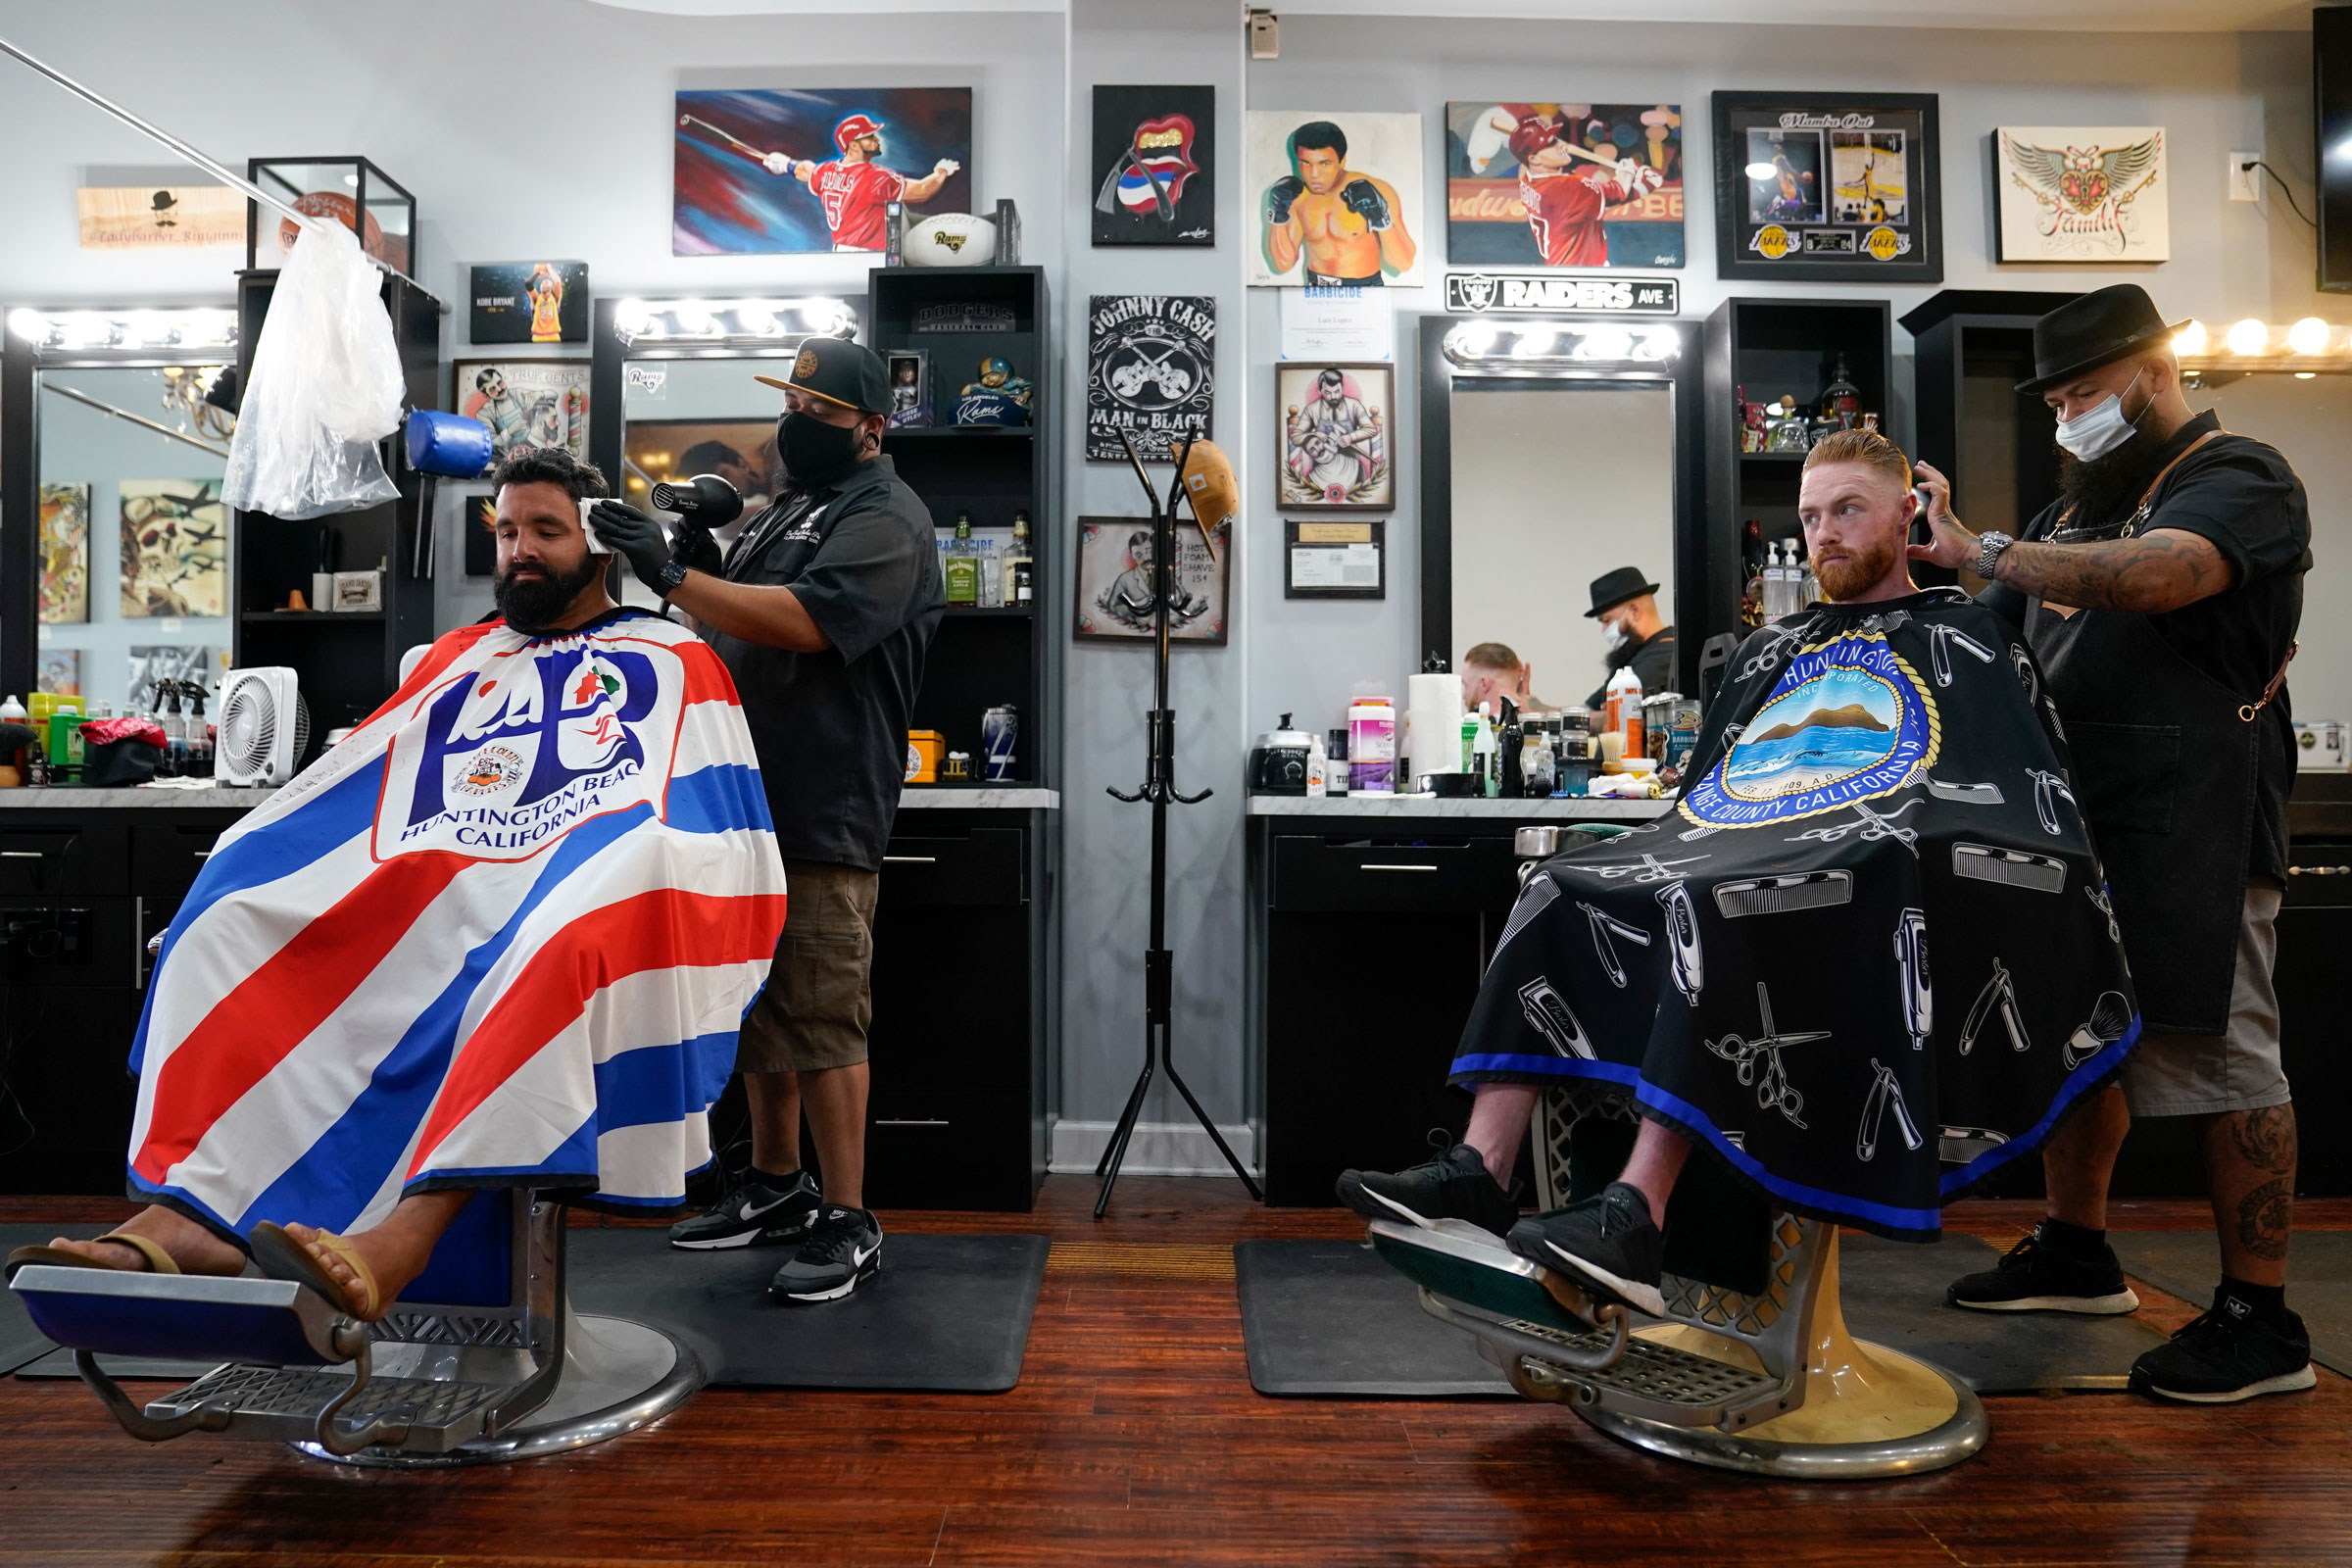 Ricardo Rivera, left, has his hair cut Wednesday by Anthony Acosta while Braunson McDonald has his hair cut by Luis Lopez in Huntington Beach, California.